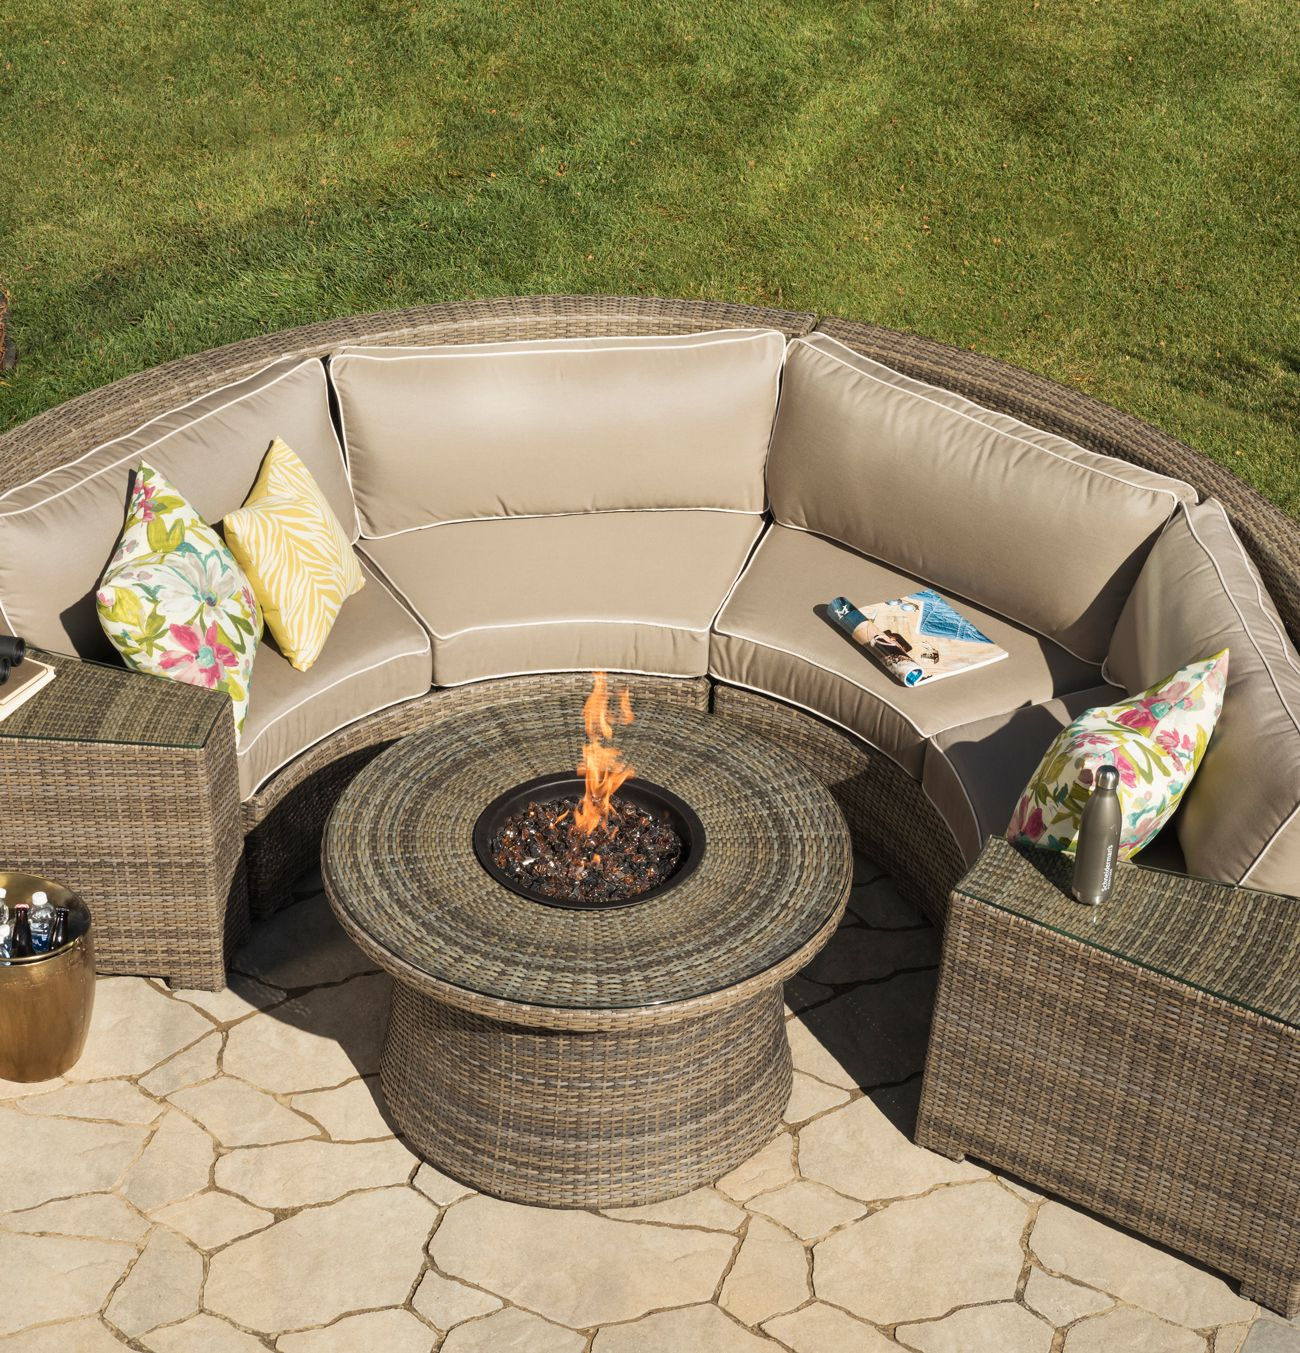 This Curved Outdoor Sectional Is Perfect For The Backyard. The Neutral  Weave And Cushions Are Really Pretty. Like That You Can Special Order The  Cushions To ...